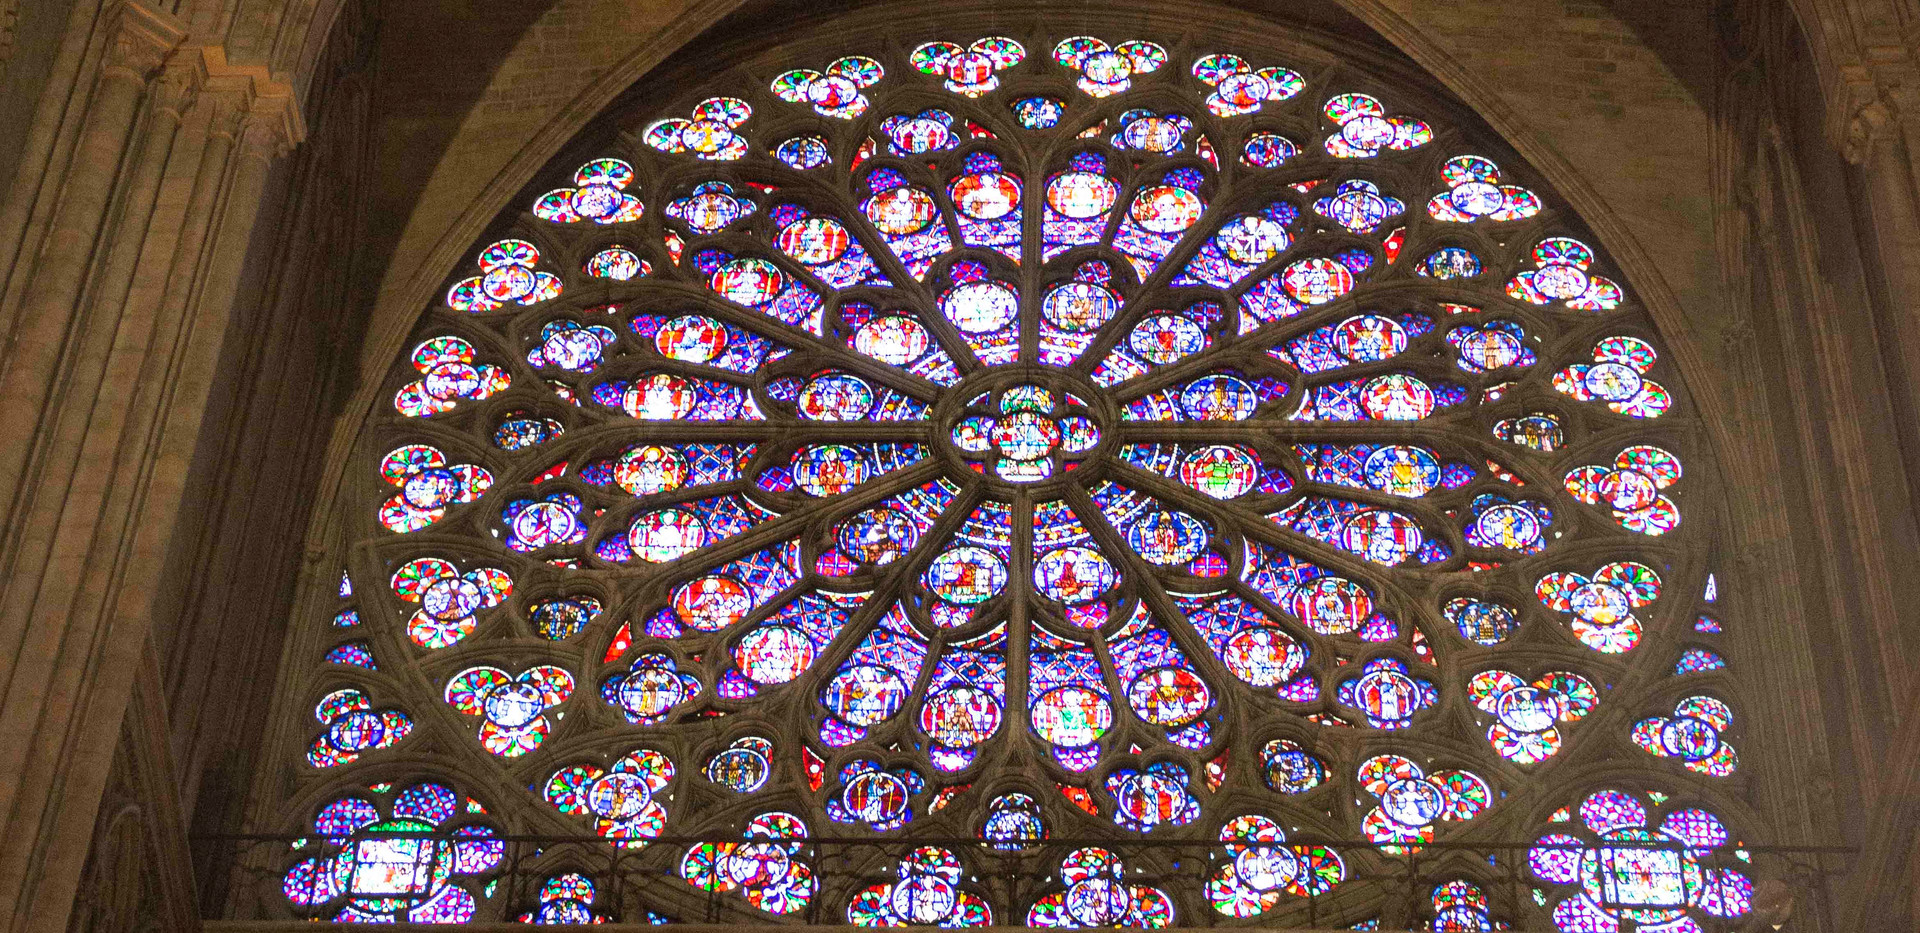 Rose window interior